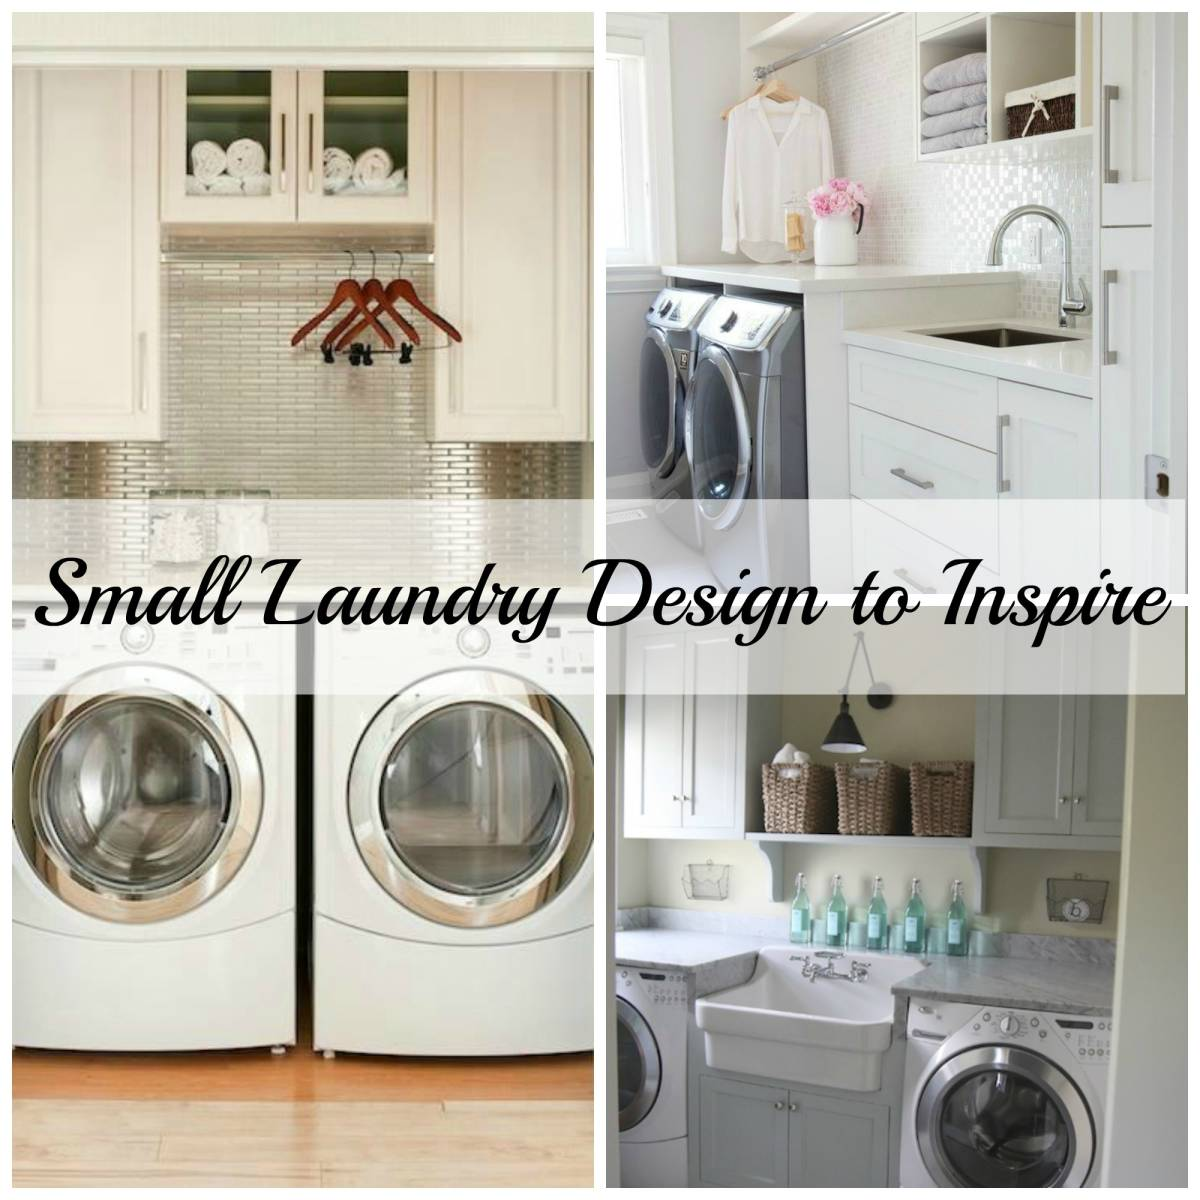 Small laundry room ideas pinterest for Small laundry design